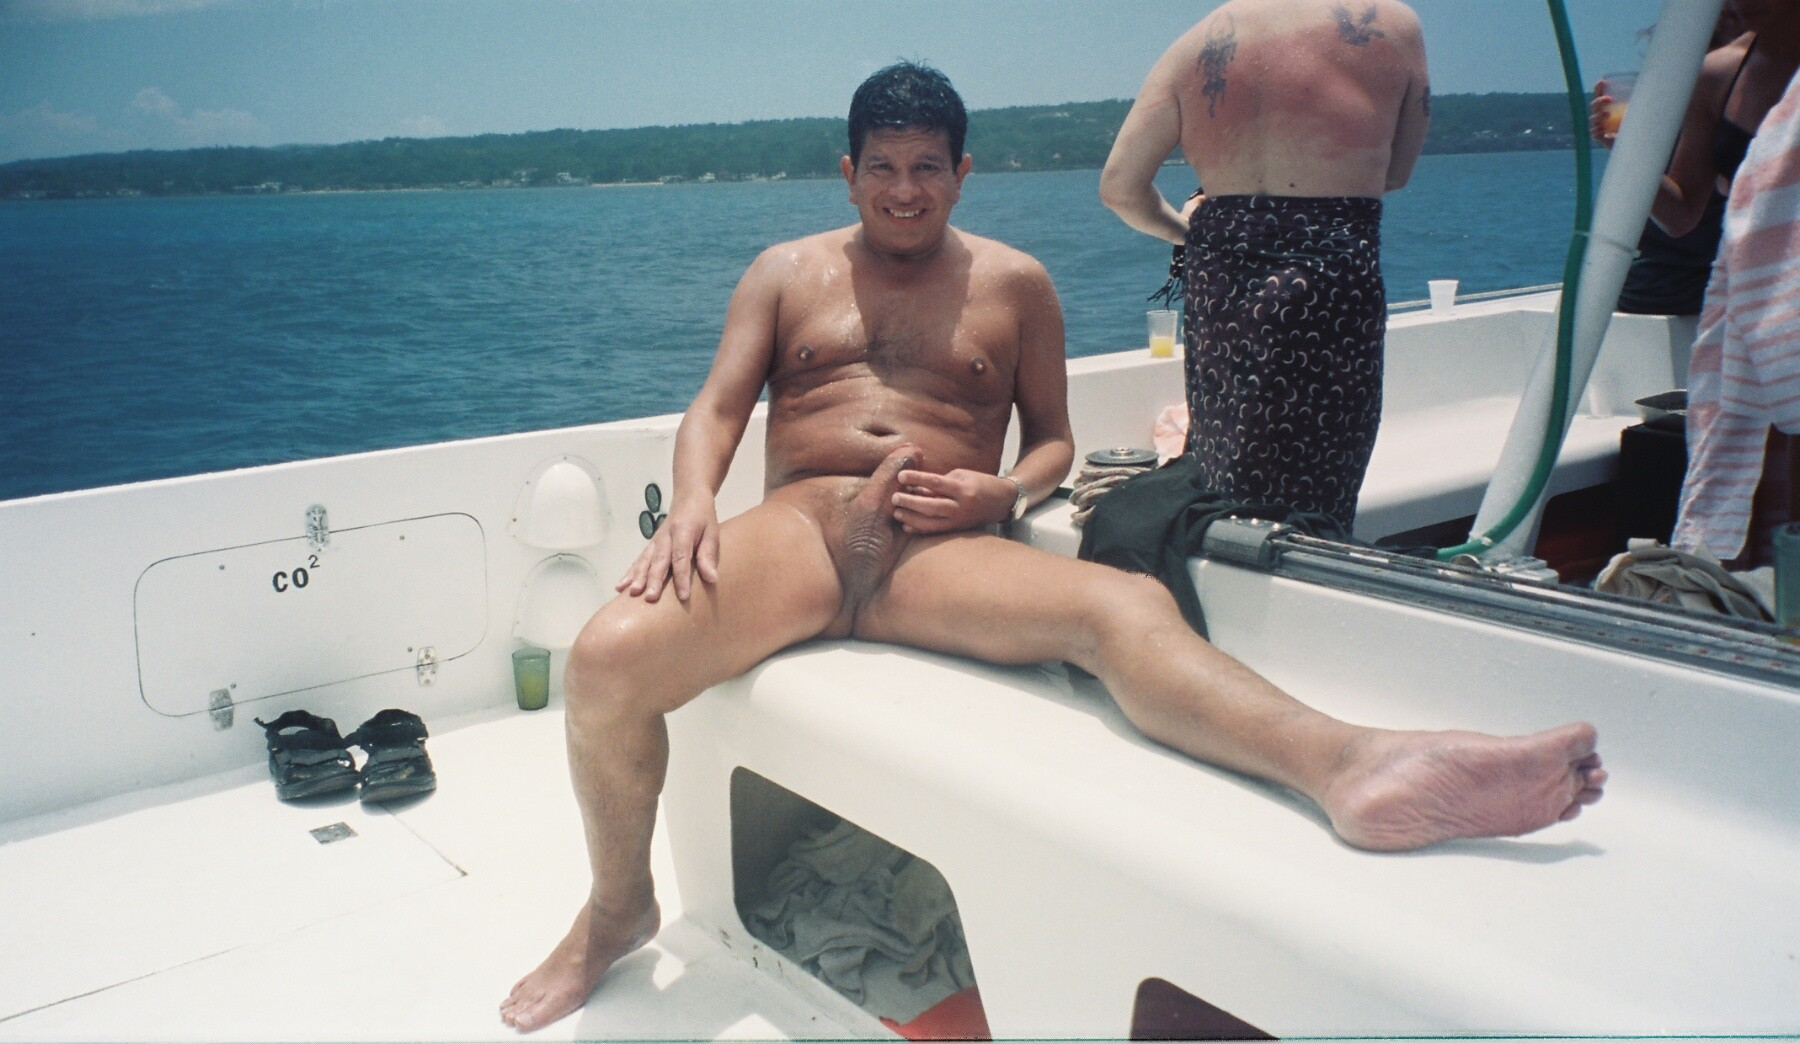 Fun on party boat real nudity dick flash